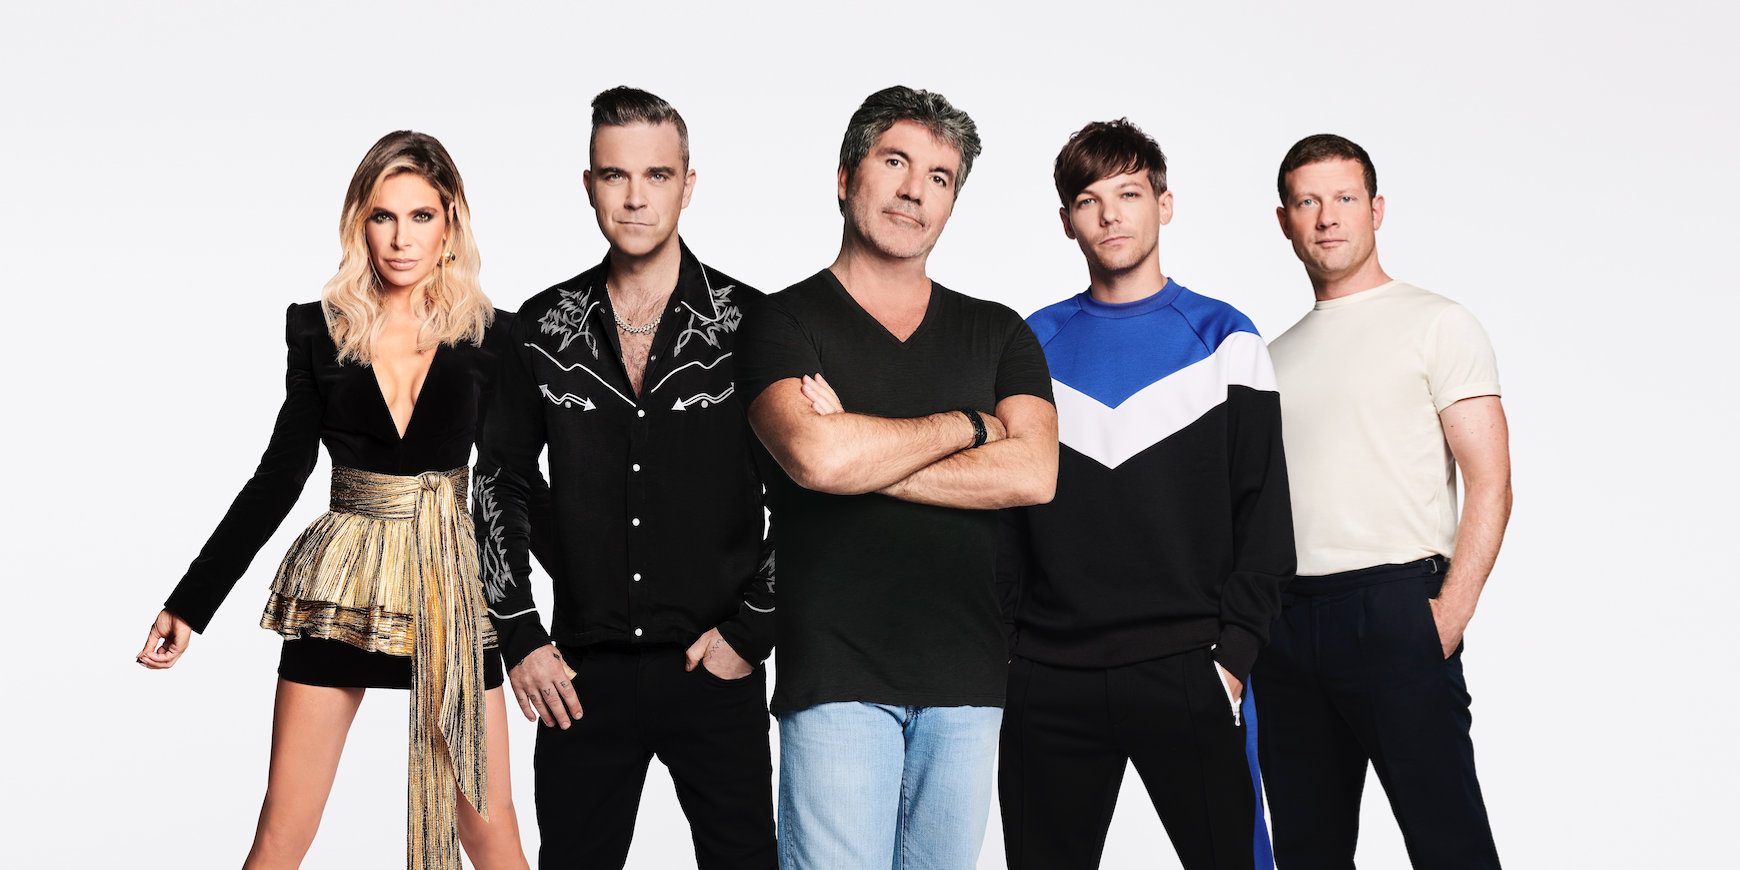 X Factor: Robbie Williams, Ayda Field, Simon Cowell, Louis Tomlinson, Dermot O'Leary (00:01 UK time 28th August 2018)